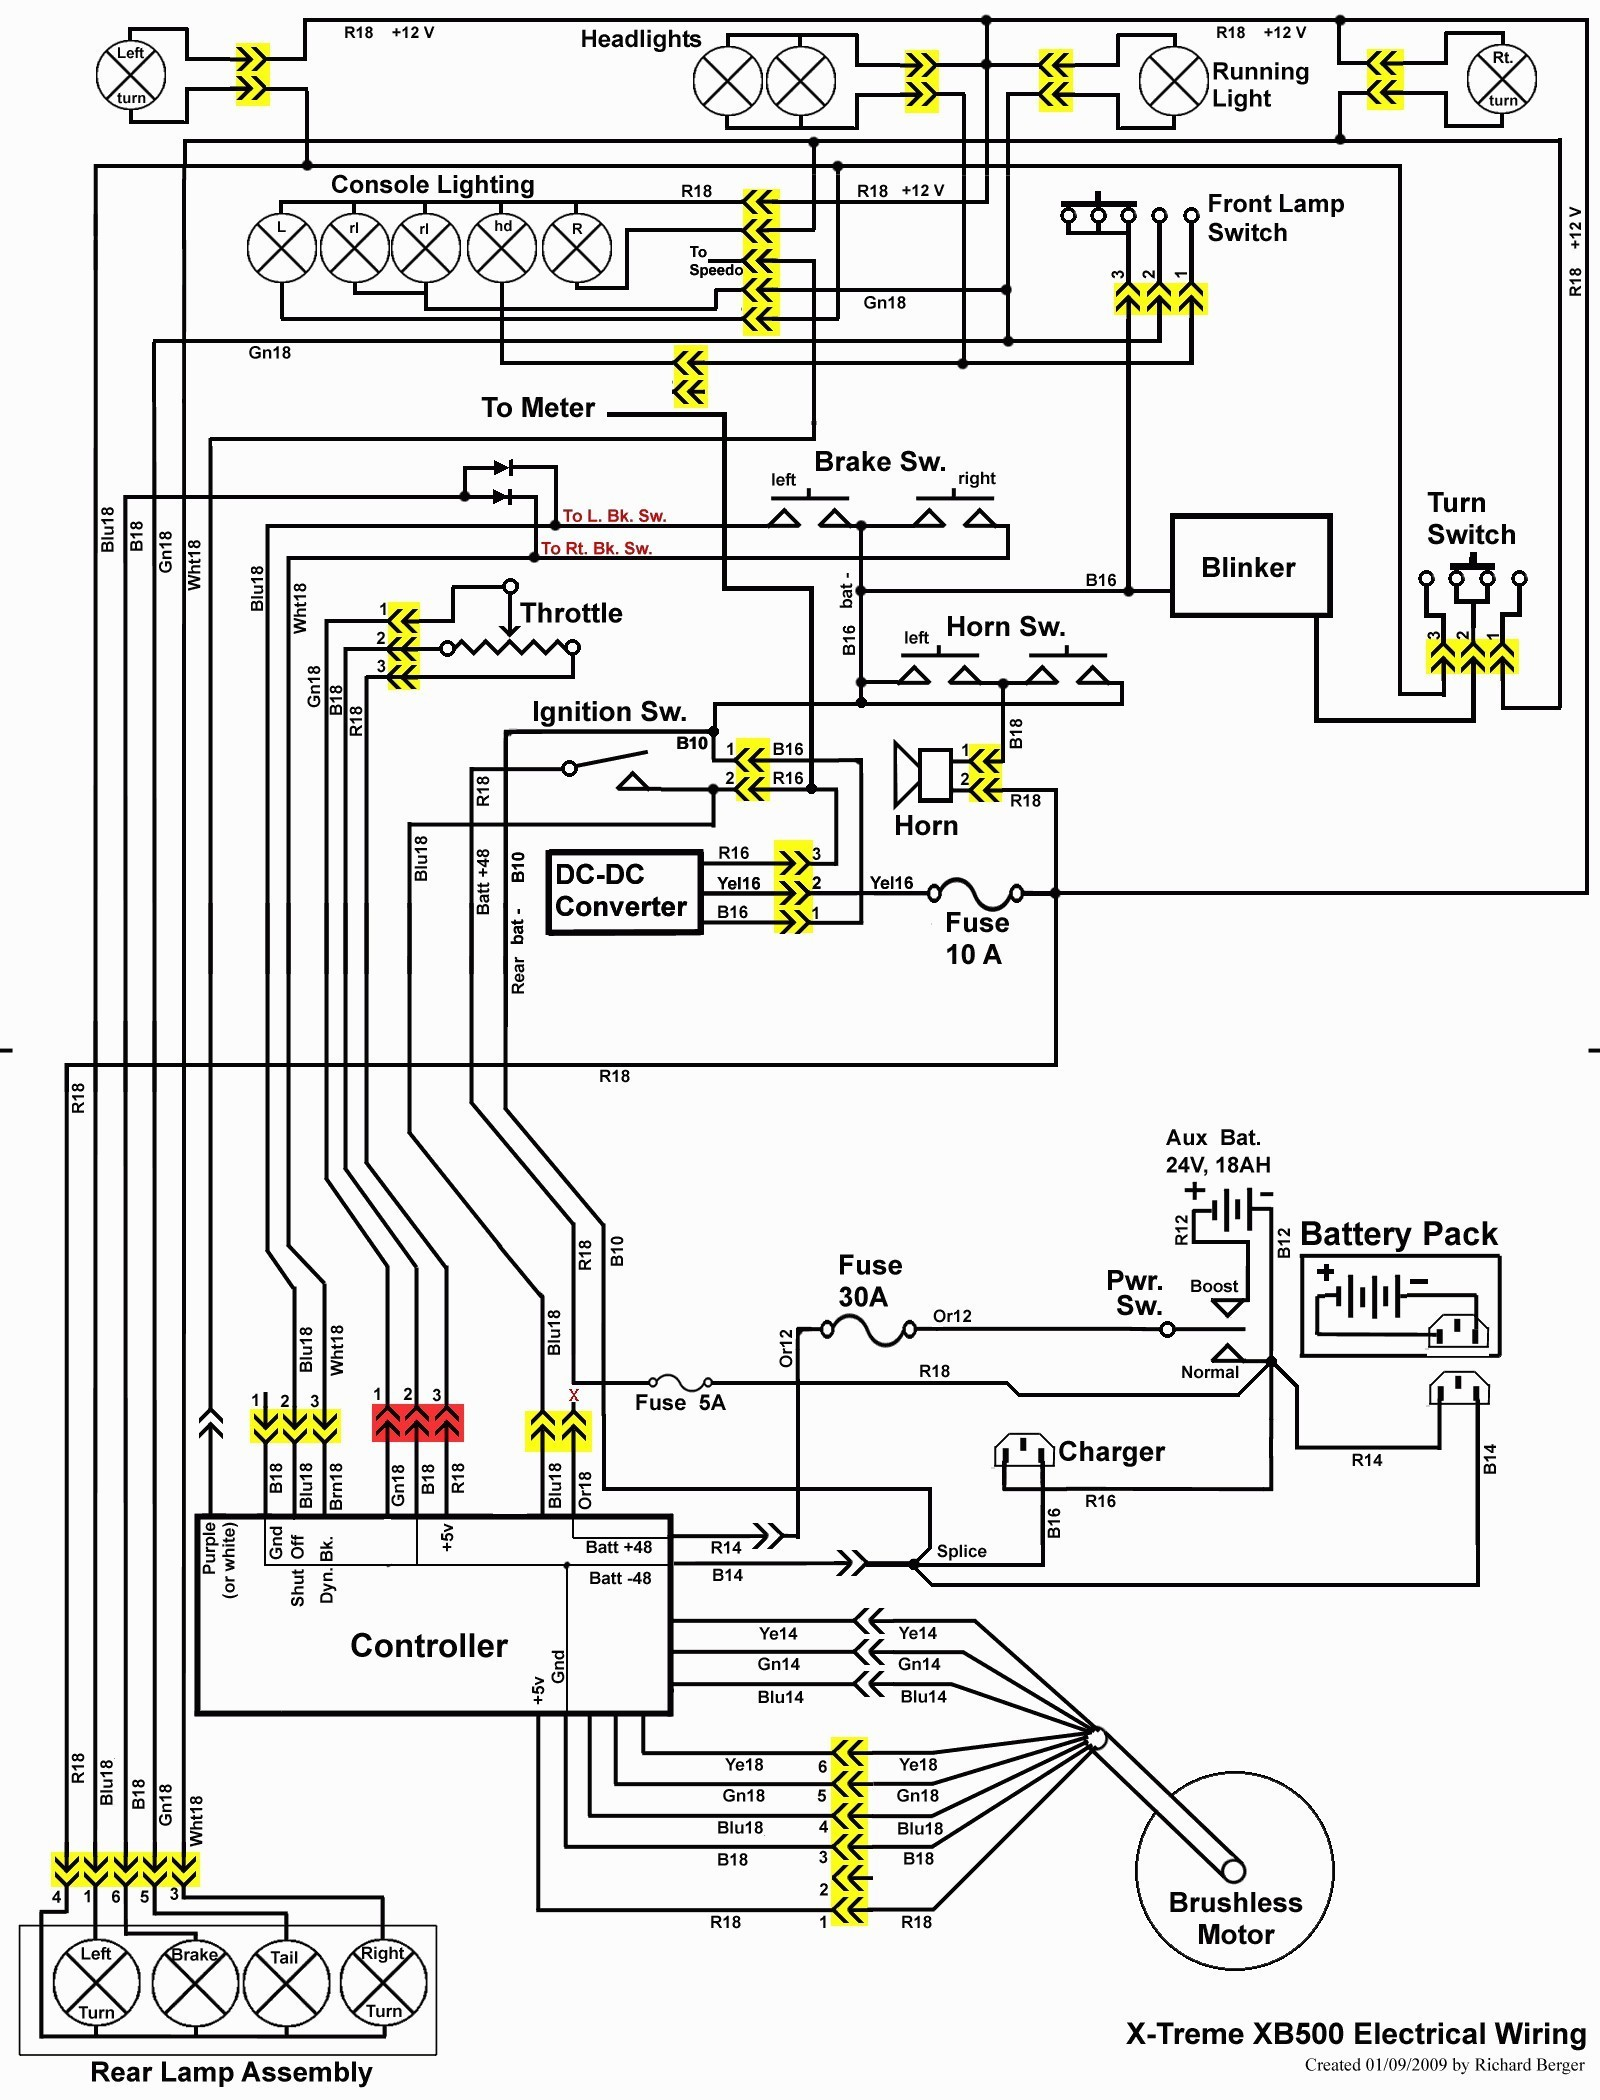 Wiring Diagram For Razor E100 Electric Scooter Wiring